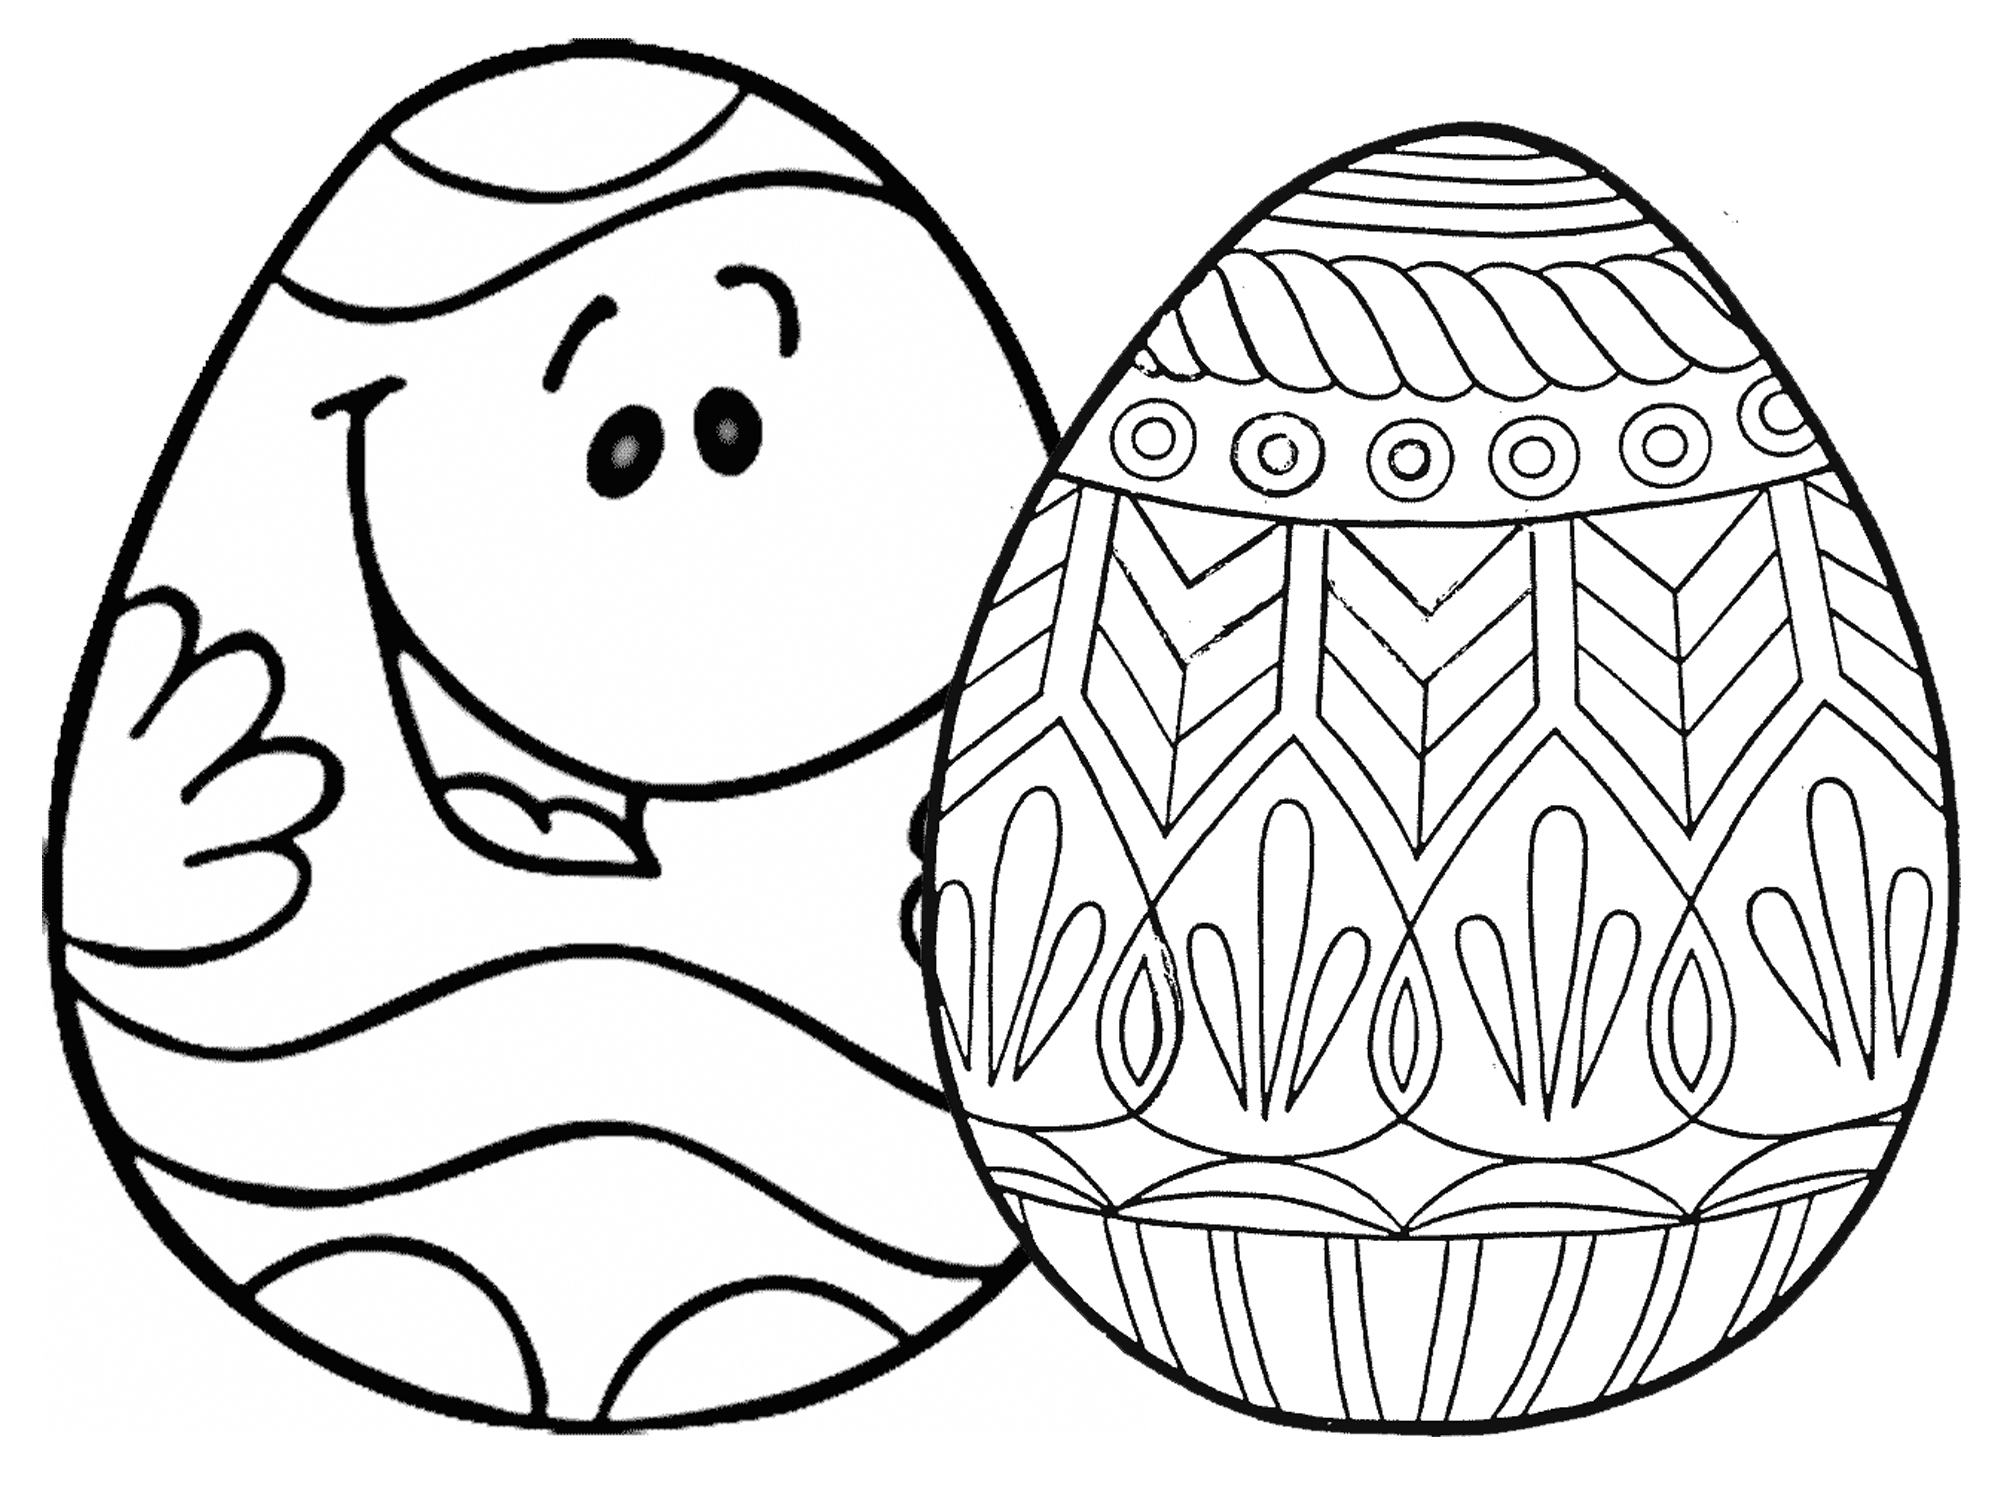 2000x1500 Bird And Decorated Eggs Coloring Pages Page Dinosaur Free